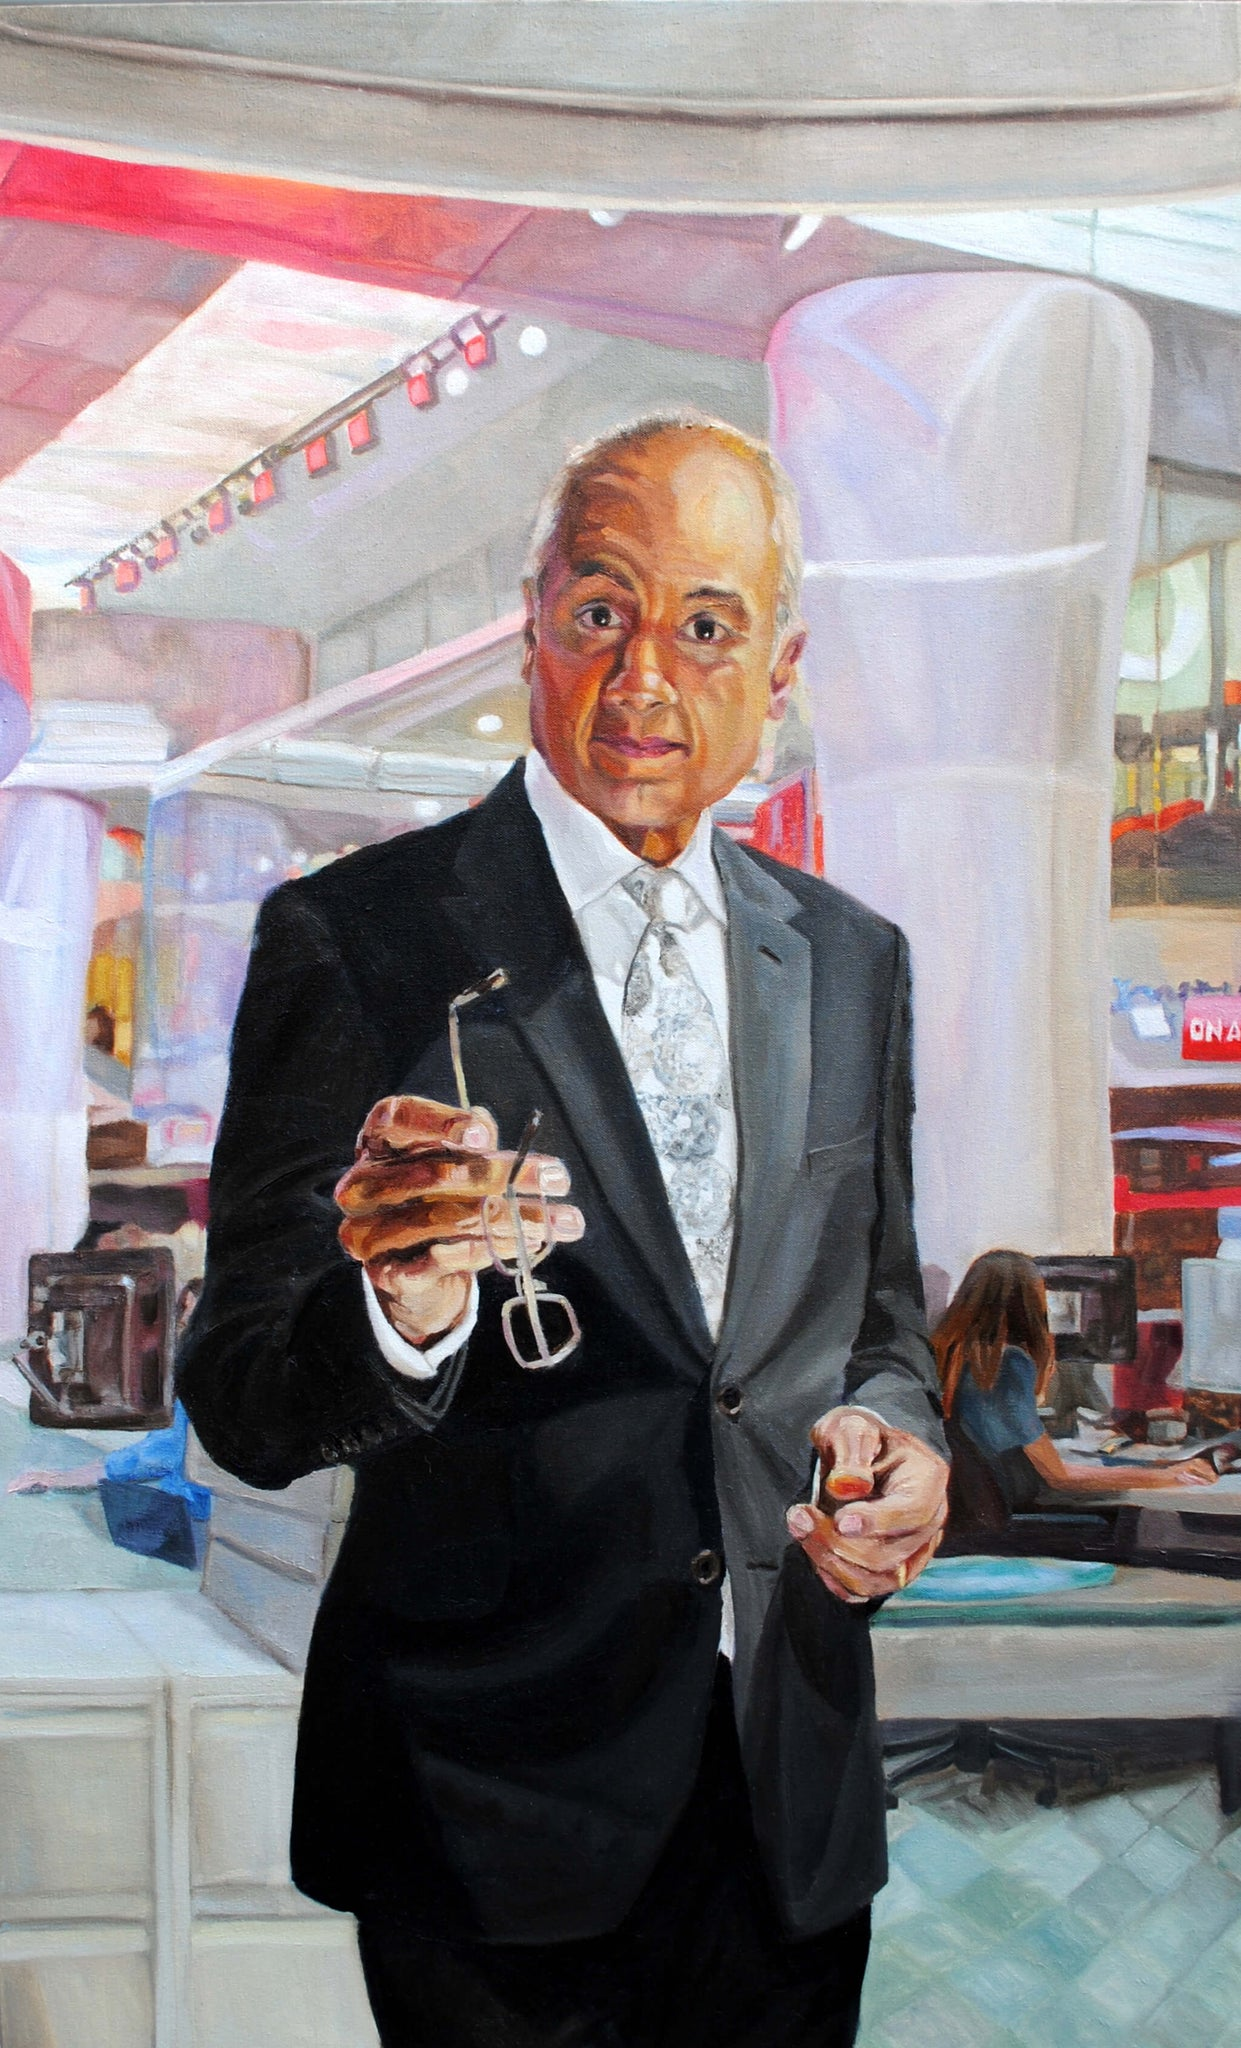 BBC's George Alagiah portrait in oils on canvas artwork by Stella Tooth.